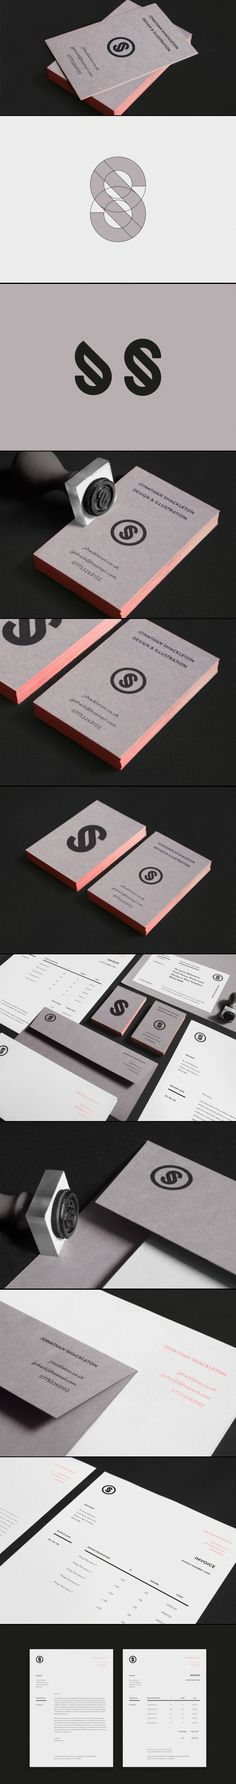 Corporate design logo business card identity | #stationary #corporate #design #corporatedesign #identity #branding #marketing repinned by www.BlickeDeeler.de | Visit our website: www.blickedeeler.de/leistungen/corporate-design